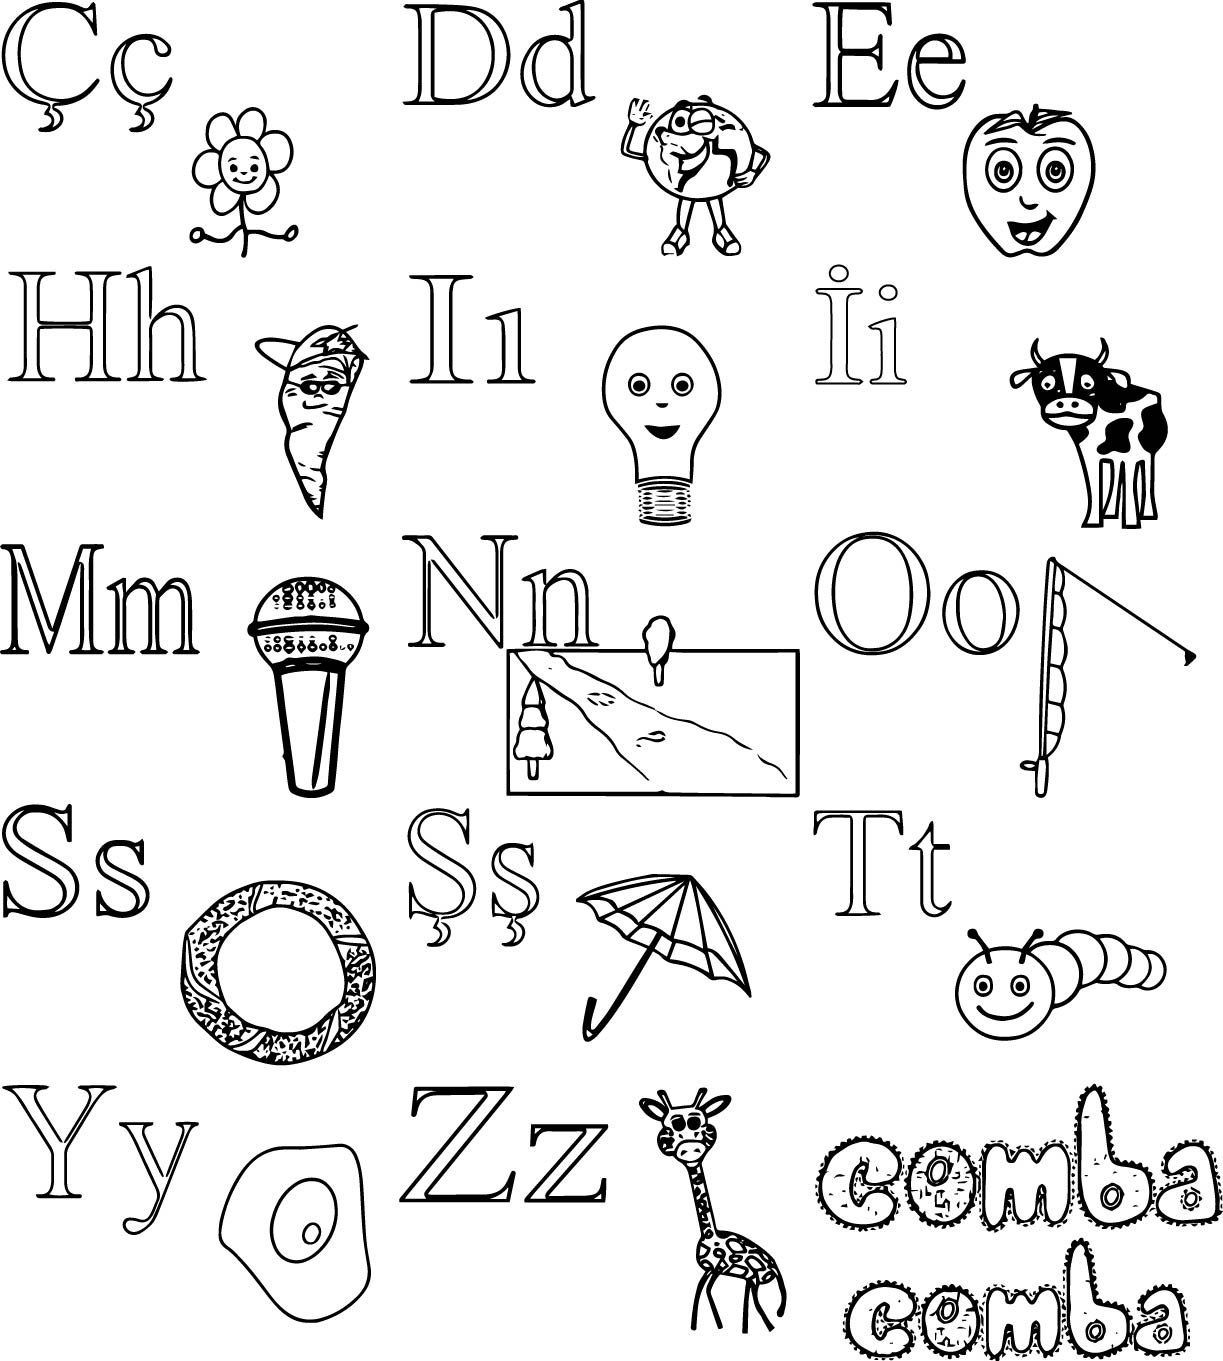 Turkish For Children Alphabet Coloring Page 02